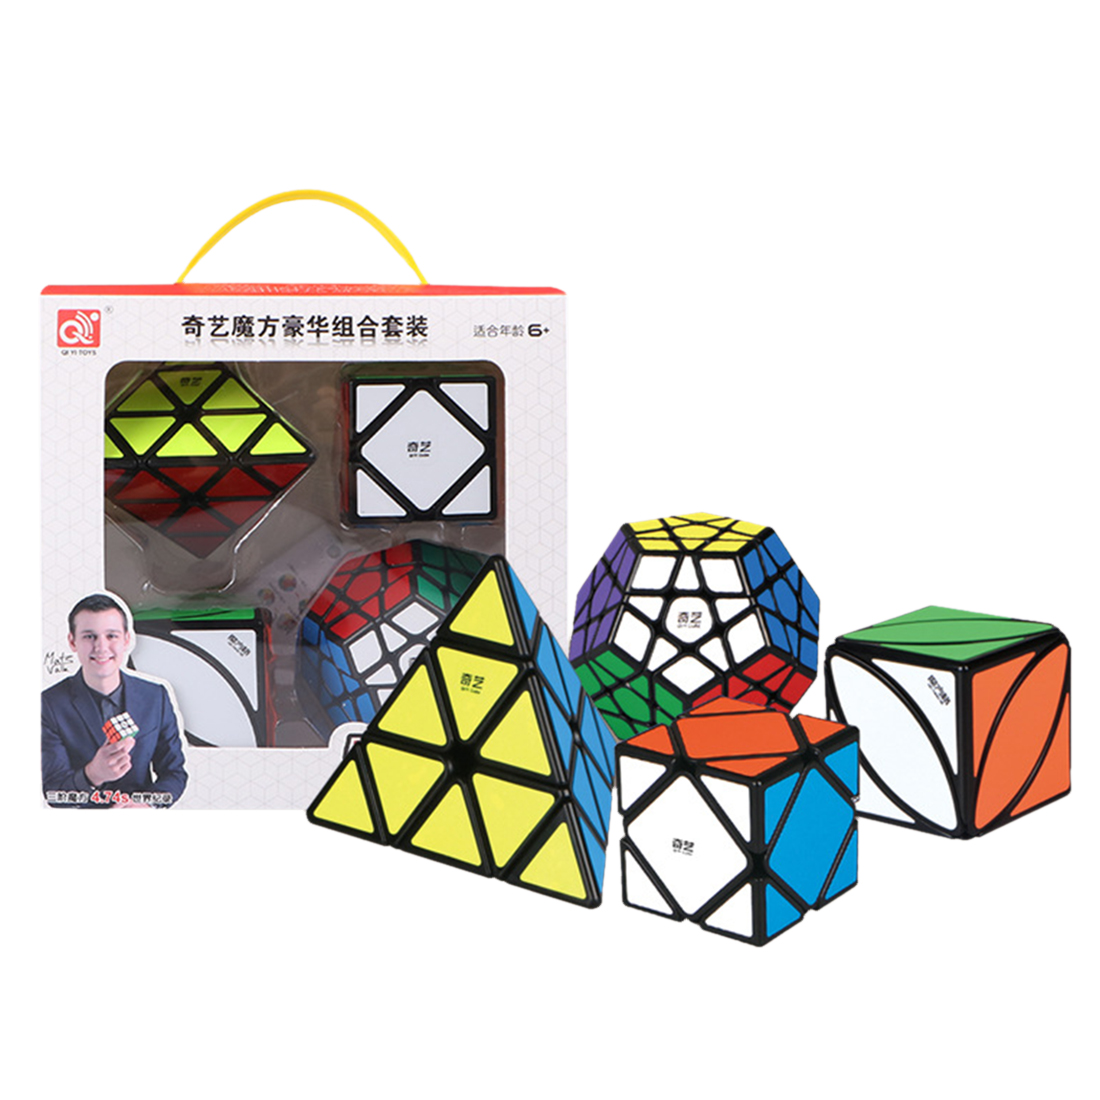 QIYI 12-sides Skew Lvy Cube Magic Speed Cube Puzzle Set Black Professional Cubo Magico Toys For Children Kids With Gift Box